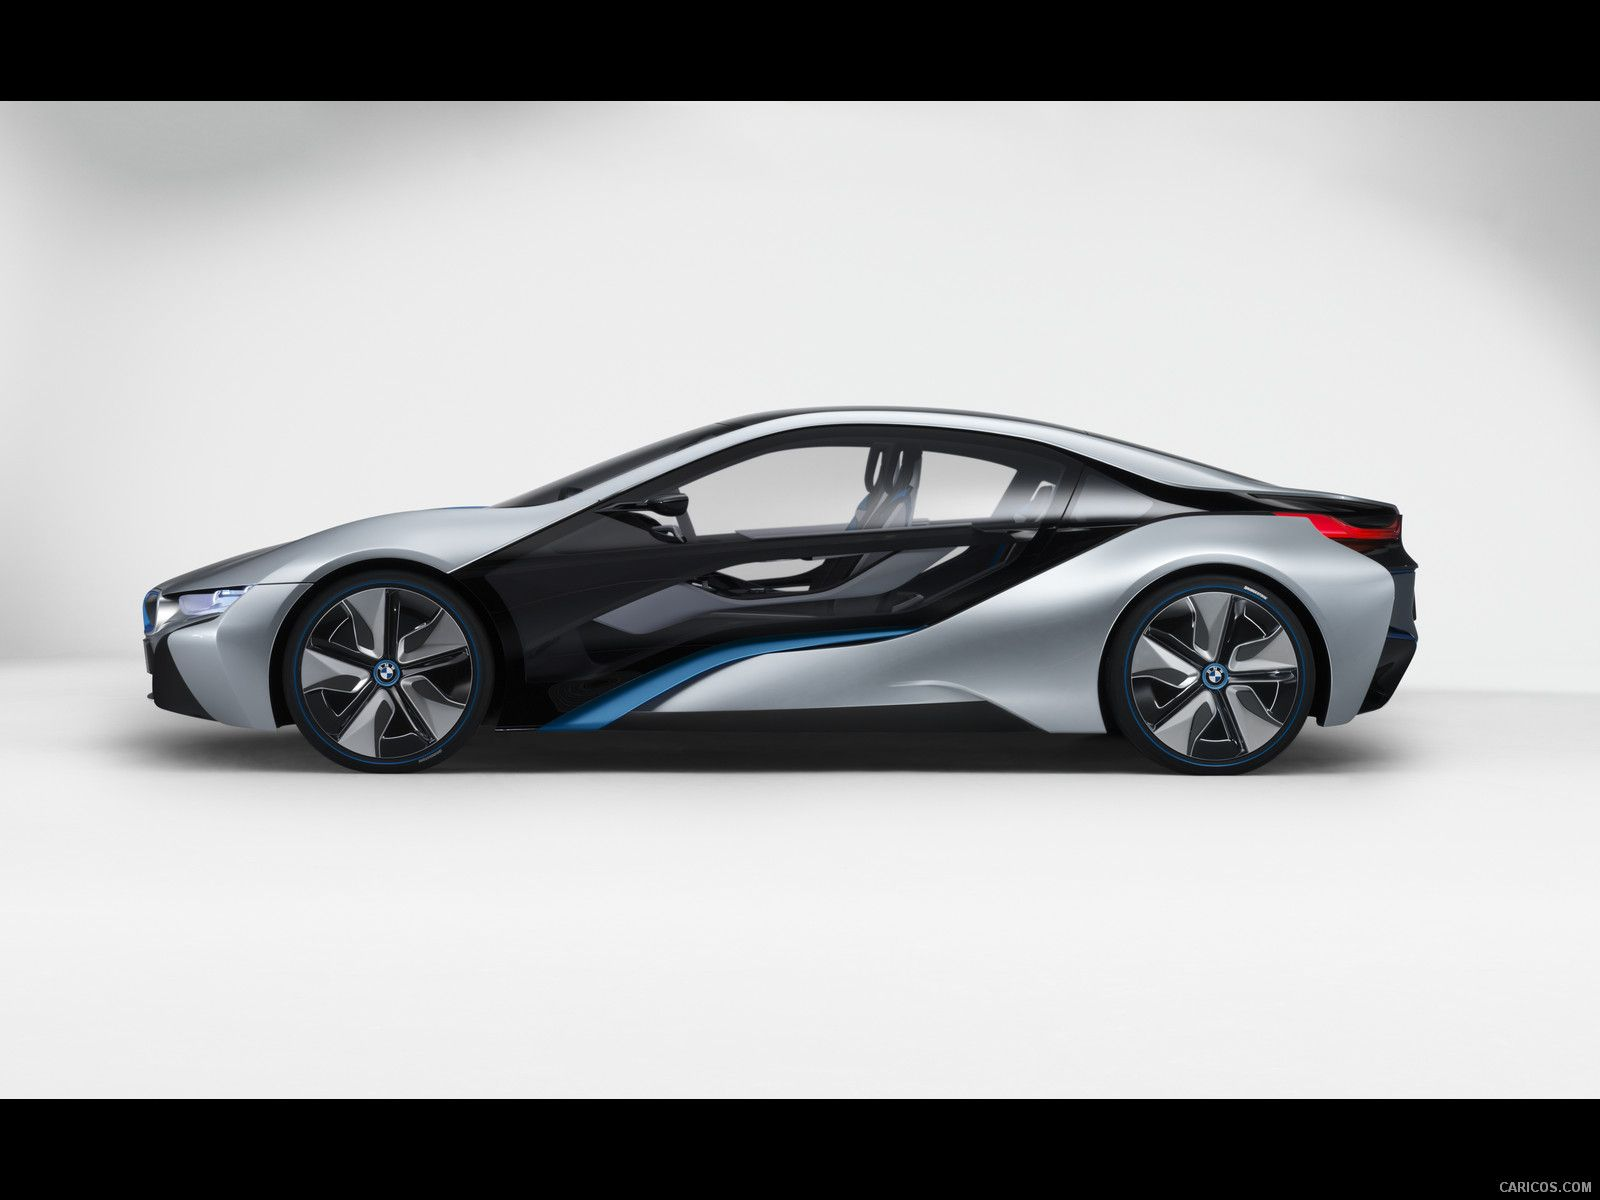 Future dream cars bmw i8 did you know this car will be launched very soon it is a complete electrically powered car pinterest bmw i8 bmw and cars